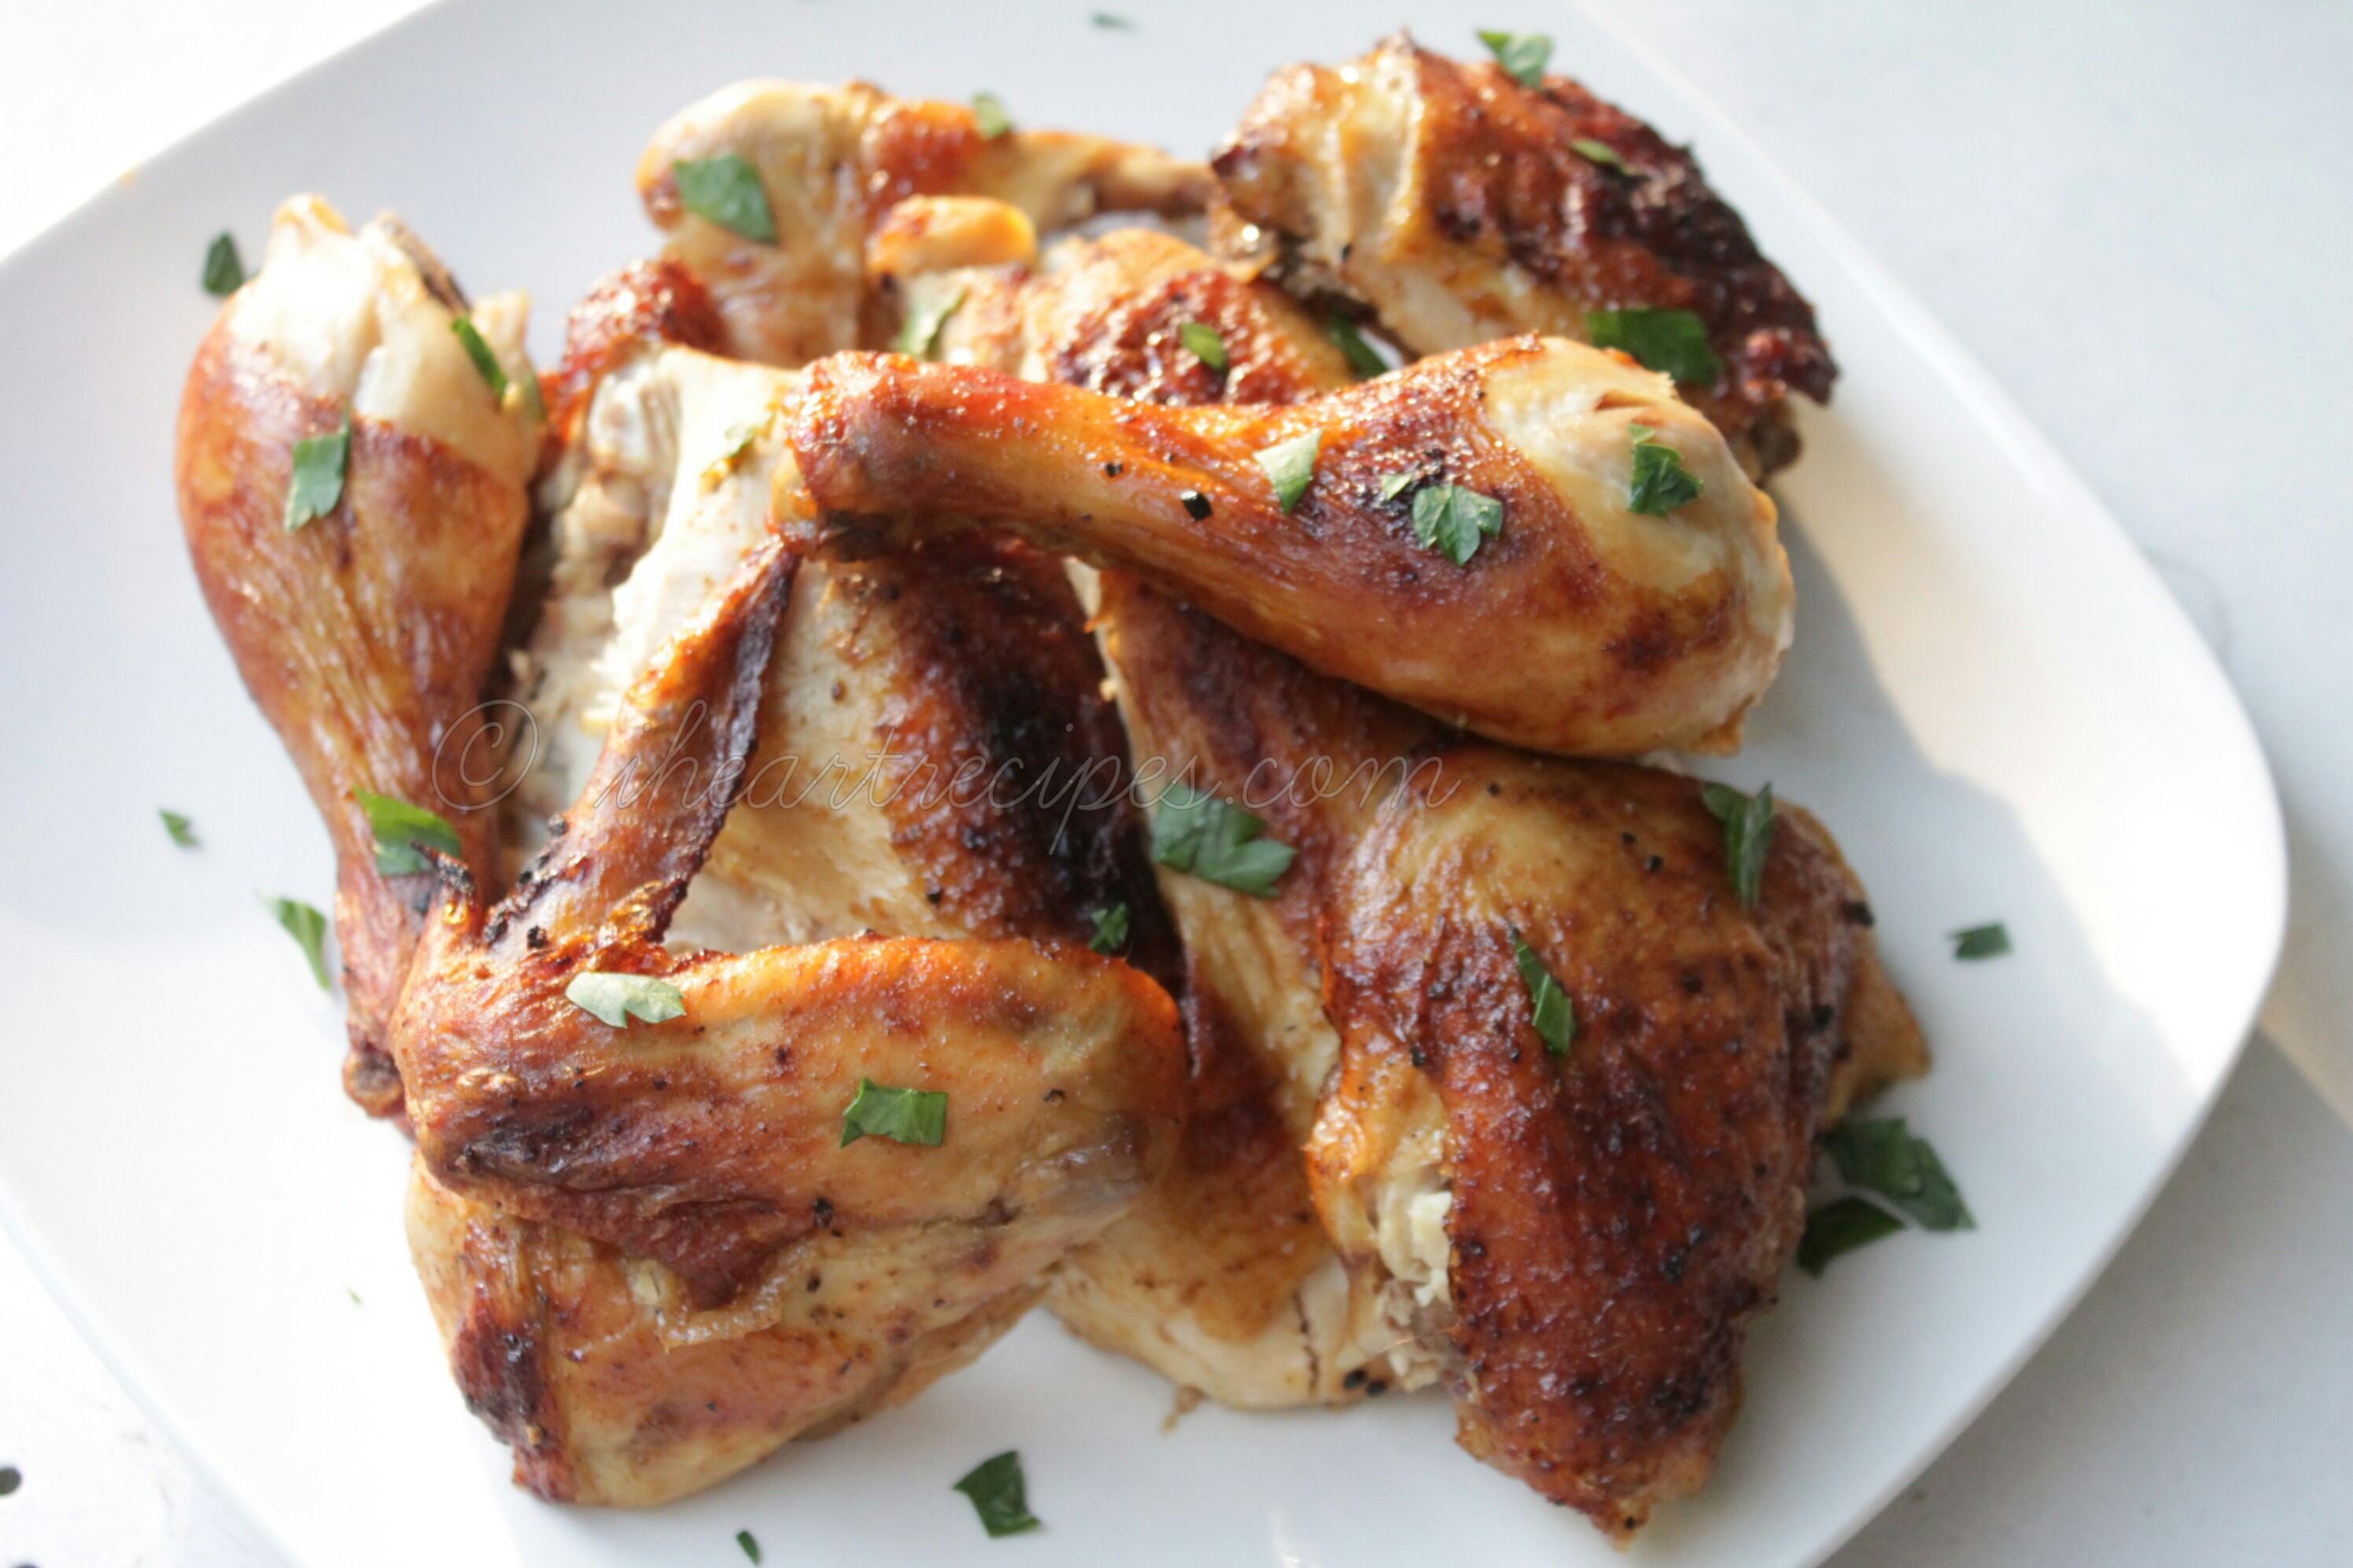 Simple Roast Chicken is versatile and always yummy!